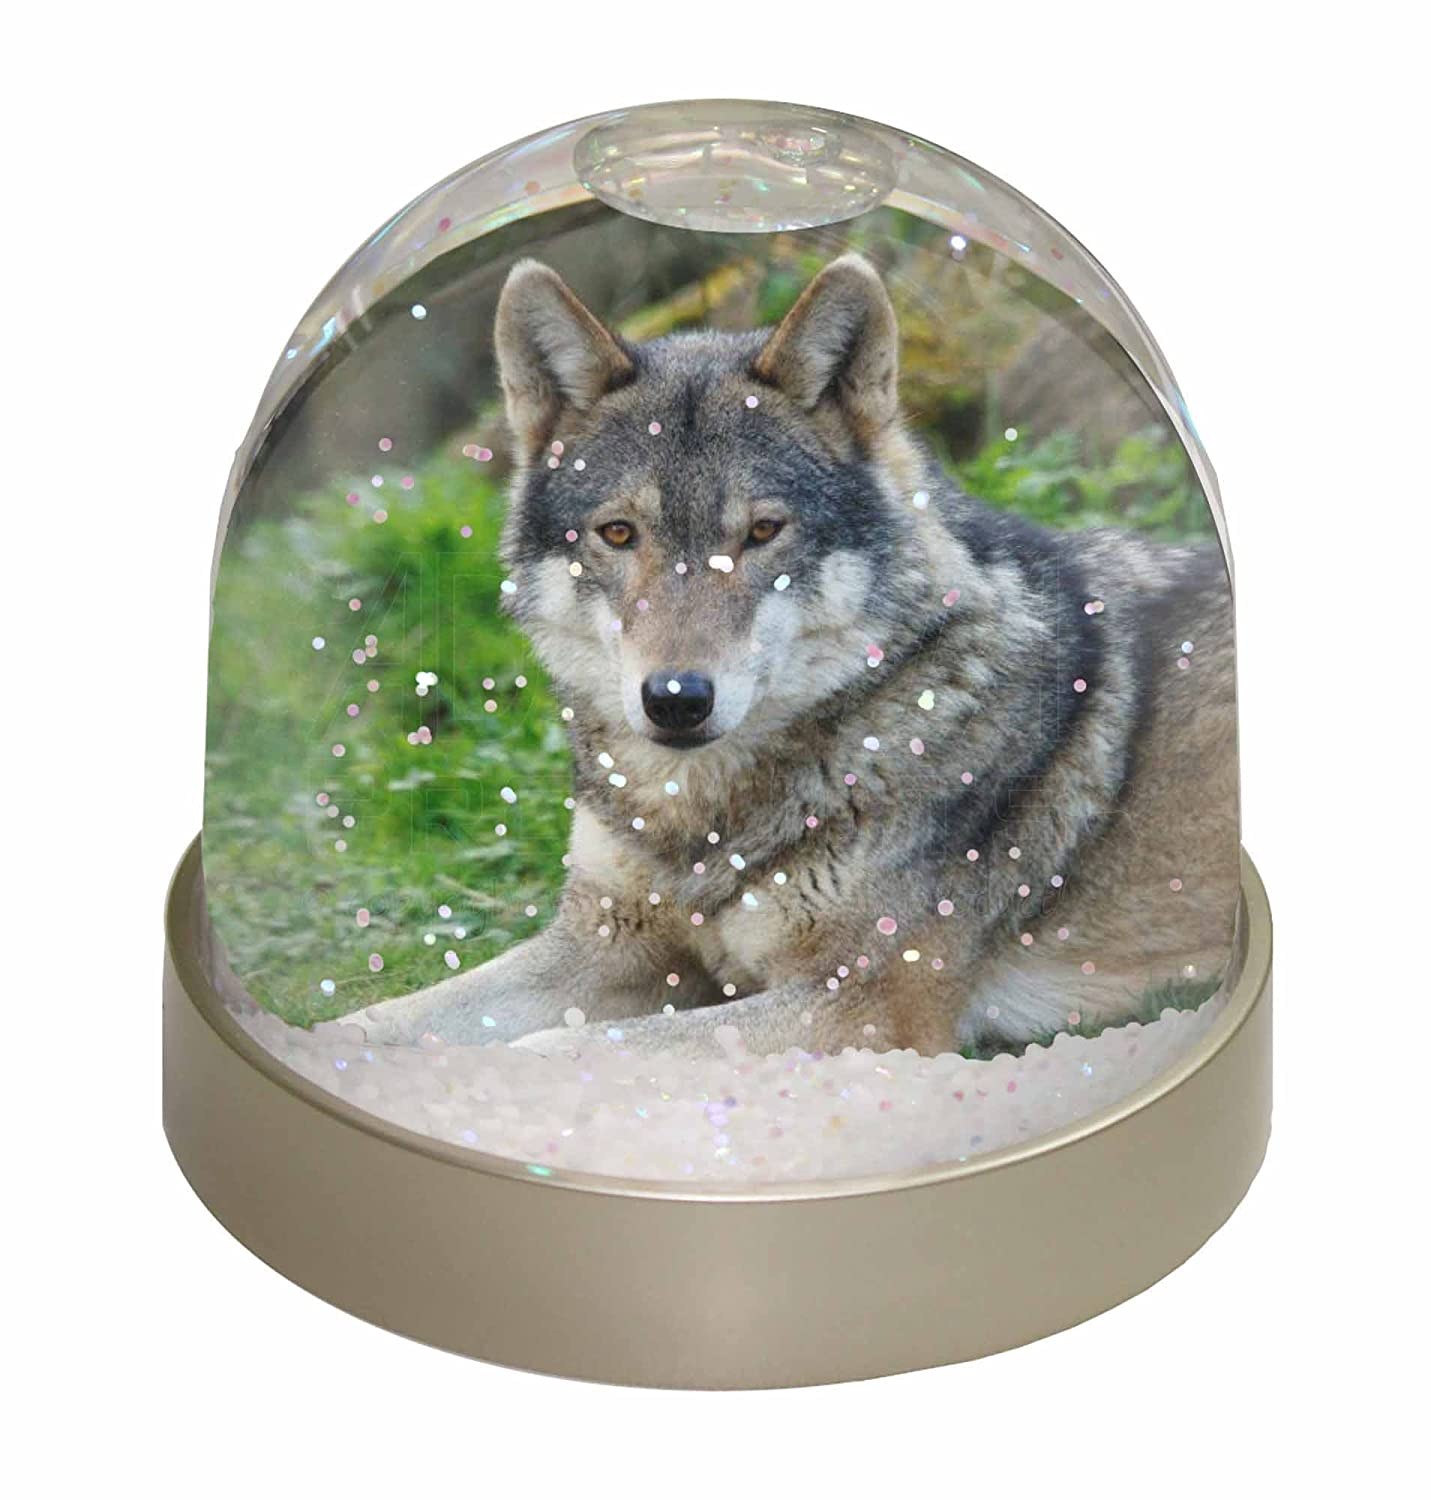 Advanta A Gorgeous Wolf Photo Snow Globe Waterball Stocking Filler Gift, Multi-Colour, 9.2 x 9.2 x 8 cm Advanta Products AW-11GL